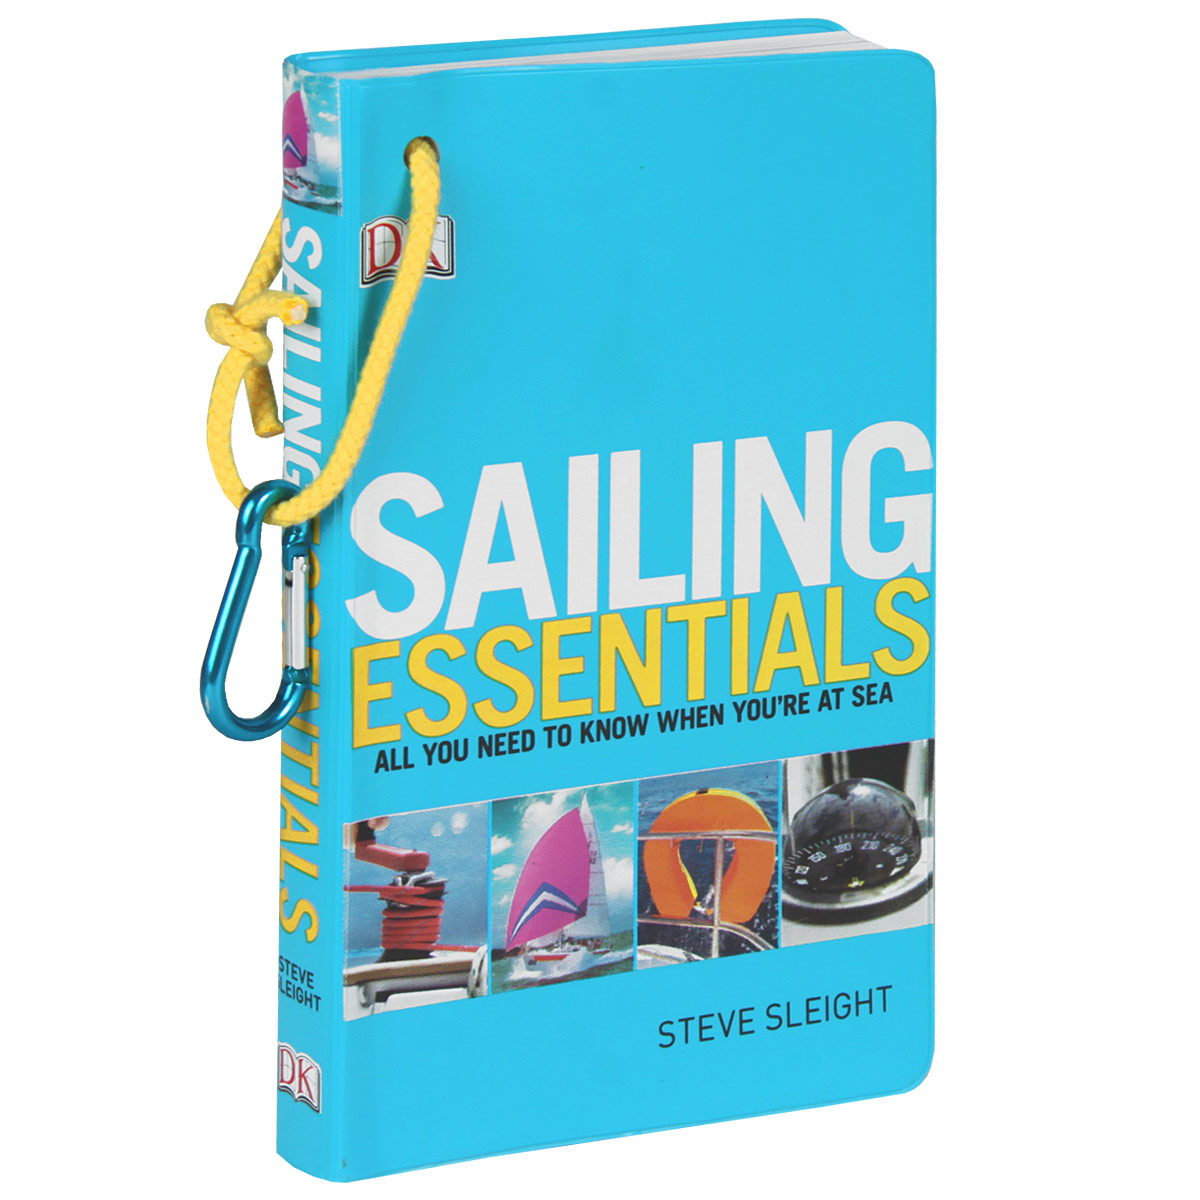 Sailing Essentials woodwork a step by step photographic guide to successful woodworking